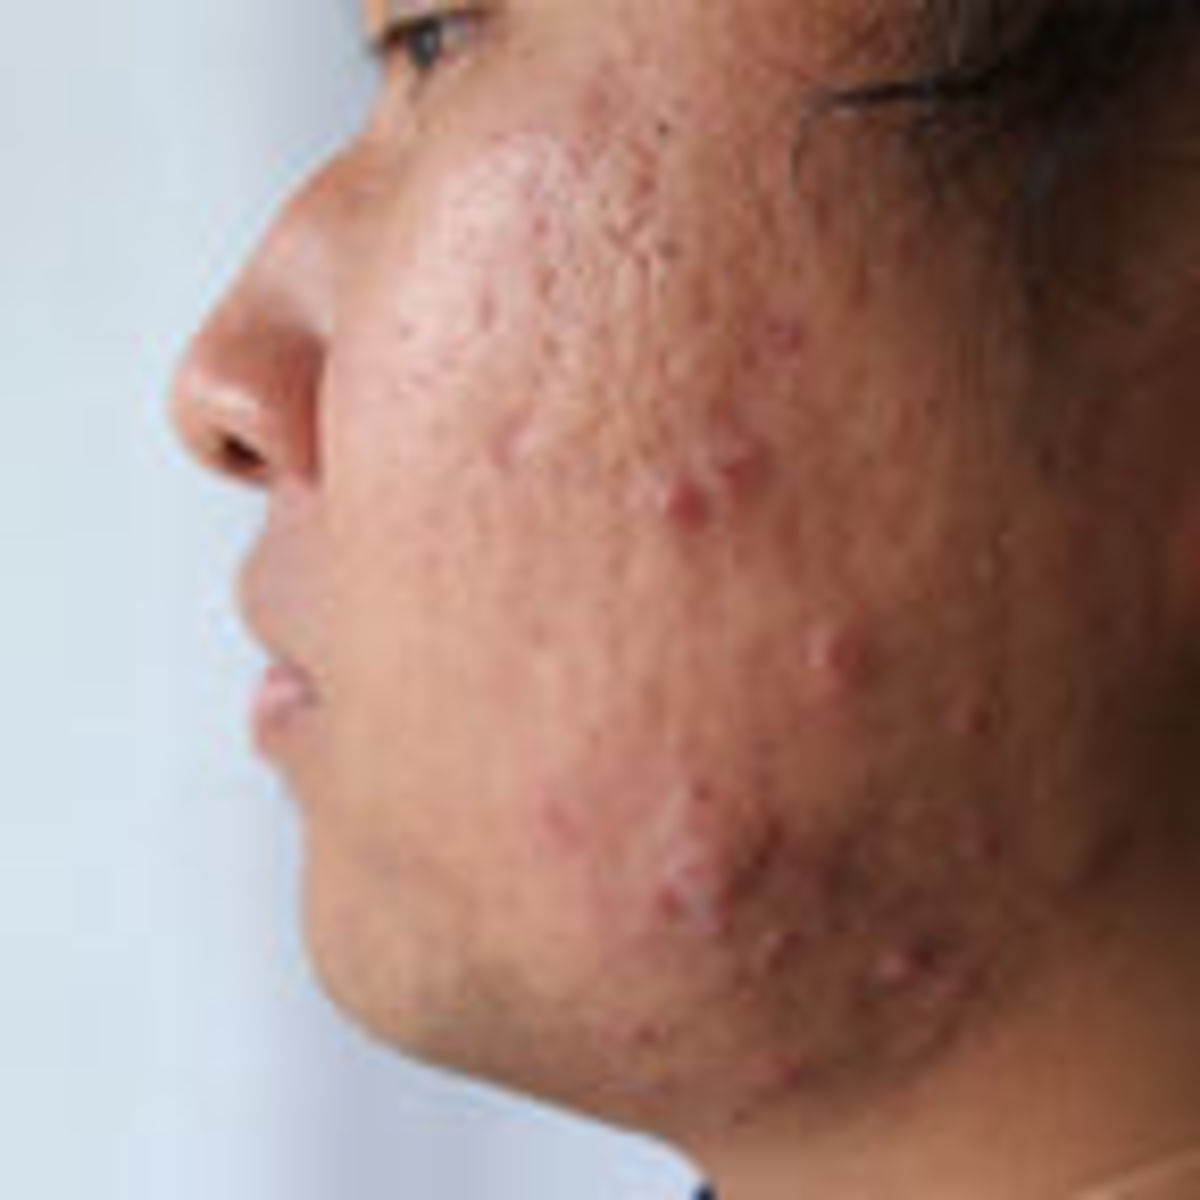 The Secret to Outsmarting Your Acne | Psychology Today